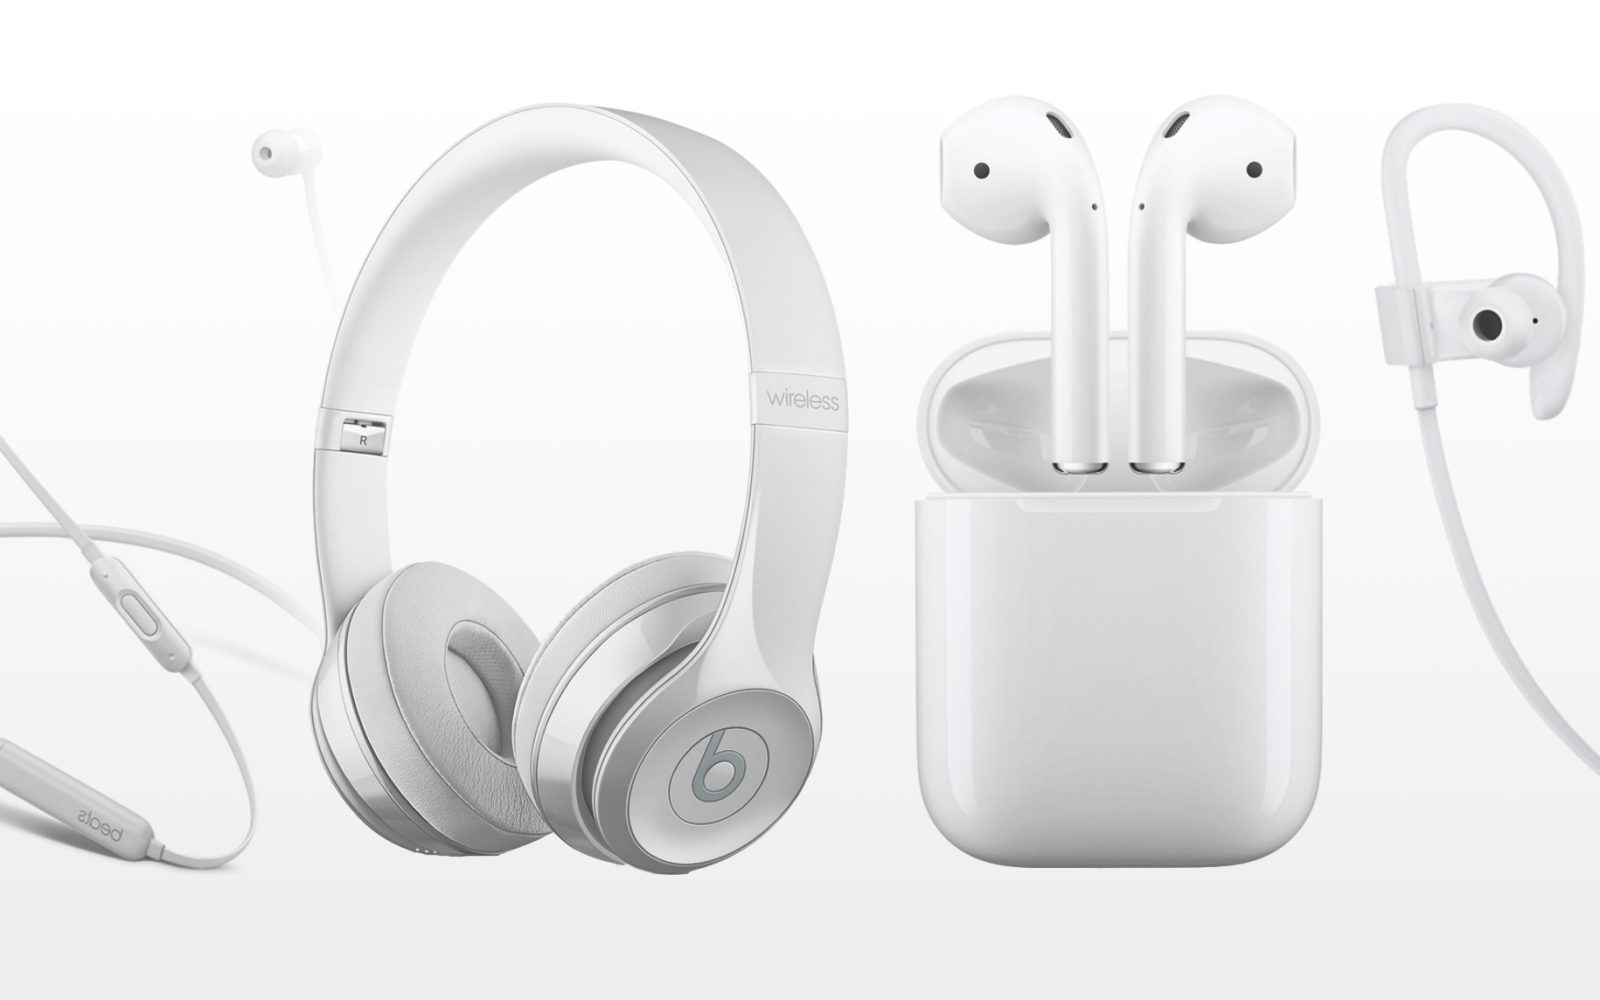 e64f94e2a9f W1 Bluetooth wireless headphones compared: Apple AirPods, Beats Solo3,  Powerbeats3 & BeatsX